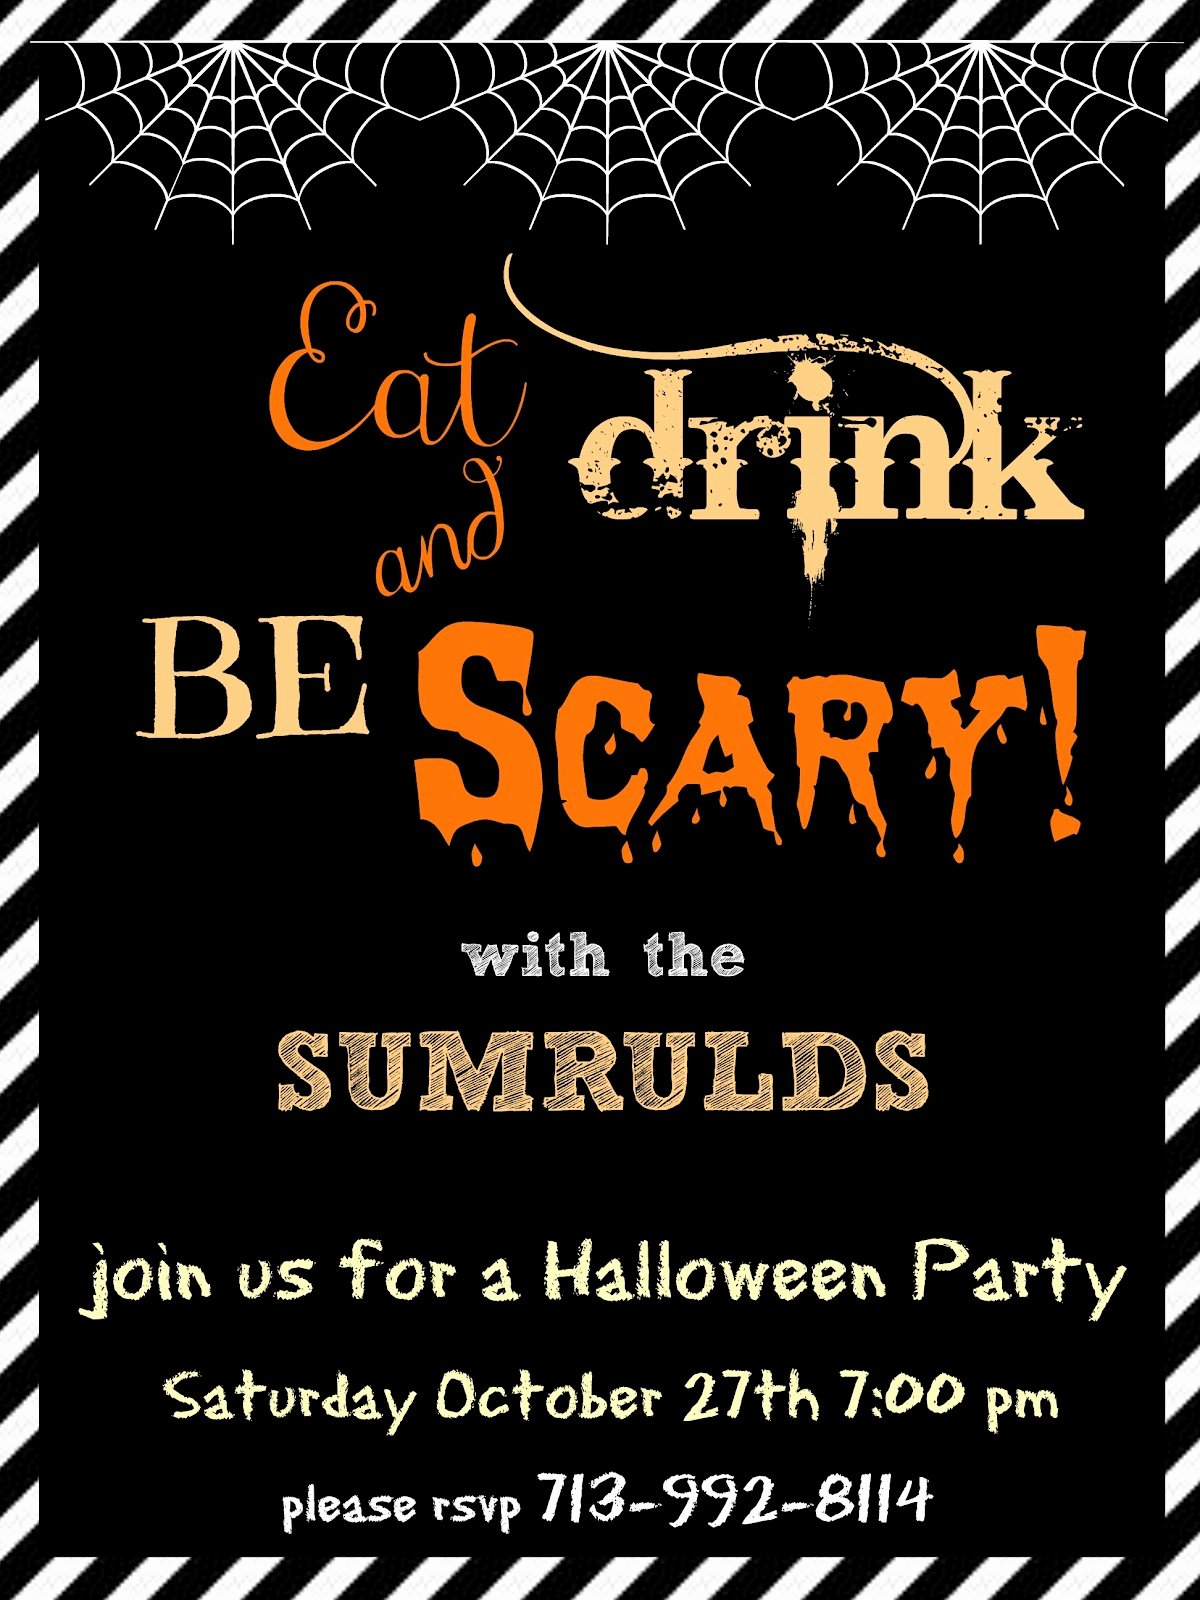 Halloween Party Invitation Template Lovely Crafty In Crosby Halloween Party Invitations Please